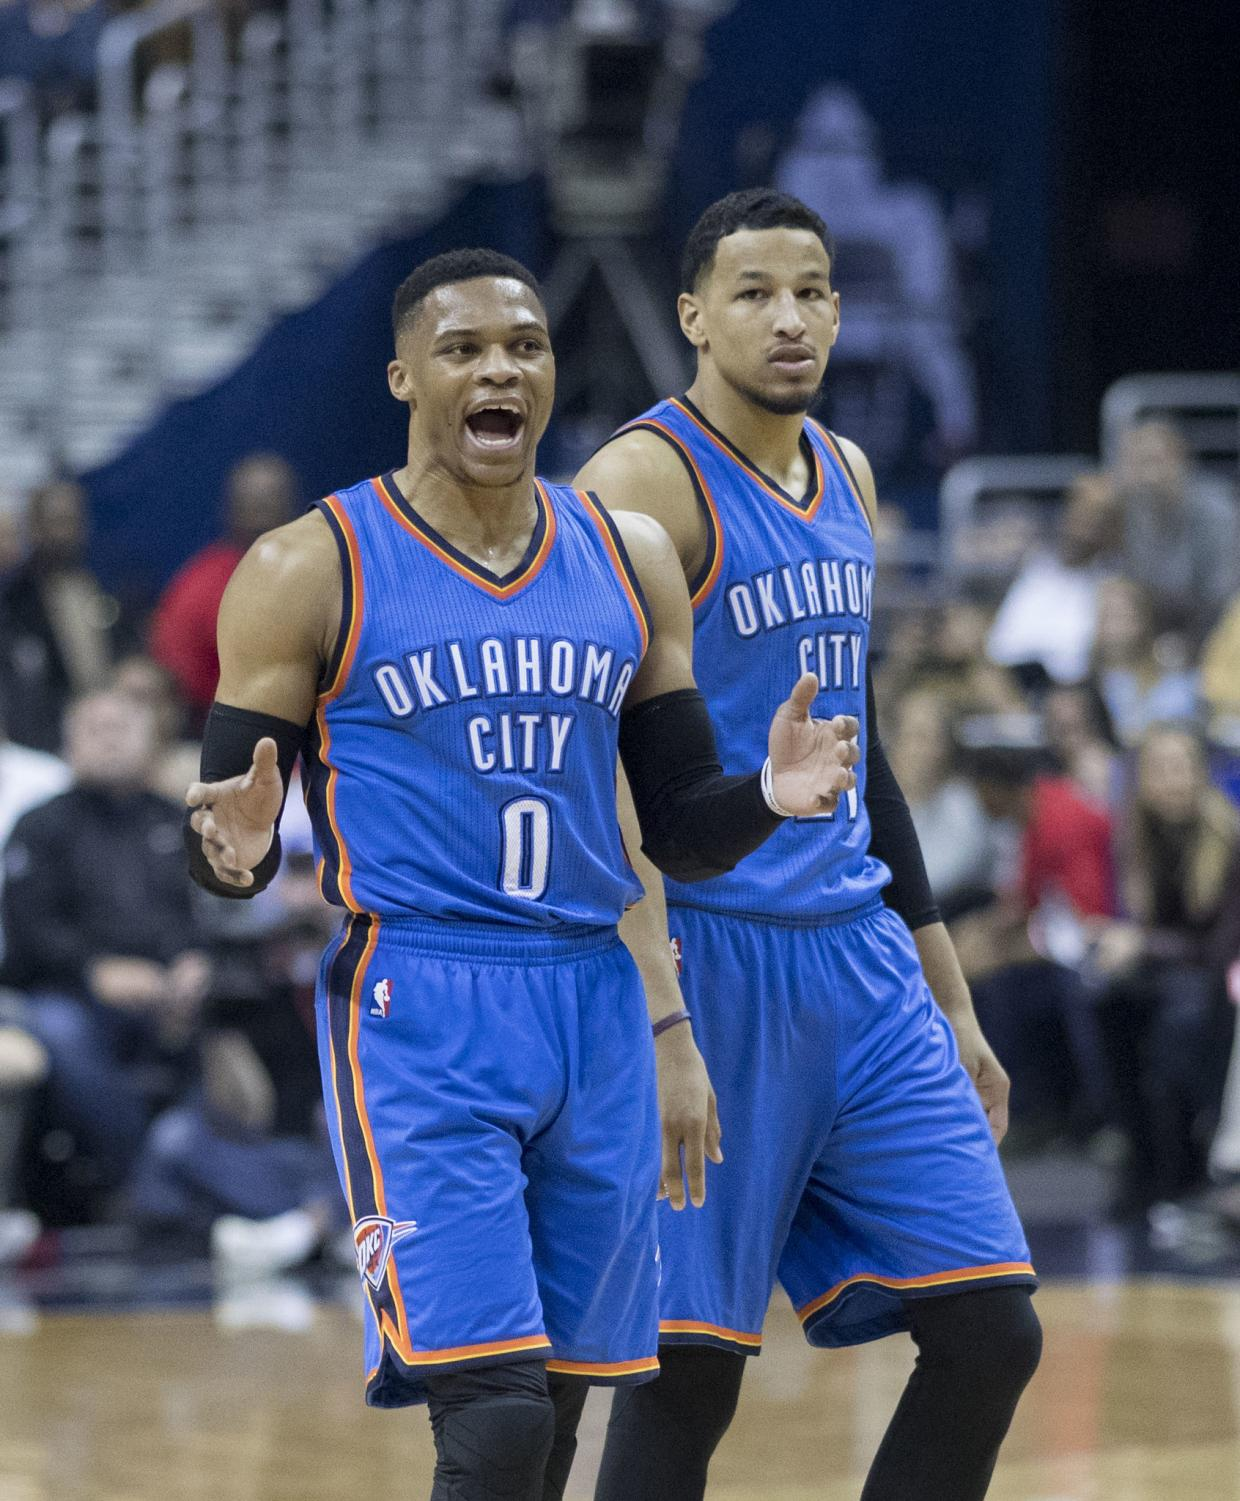 Russell Westbrook (L) of the Oklahoma City Thunder gets energized with his teammate Andre Roberson while facing the Washington Wizards on Feb. 13, 2017.